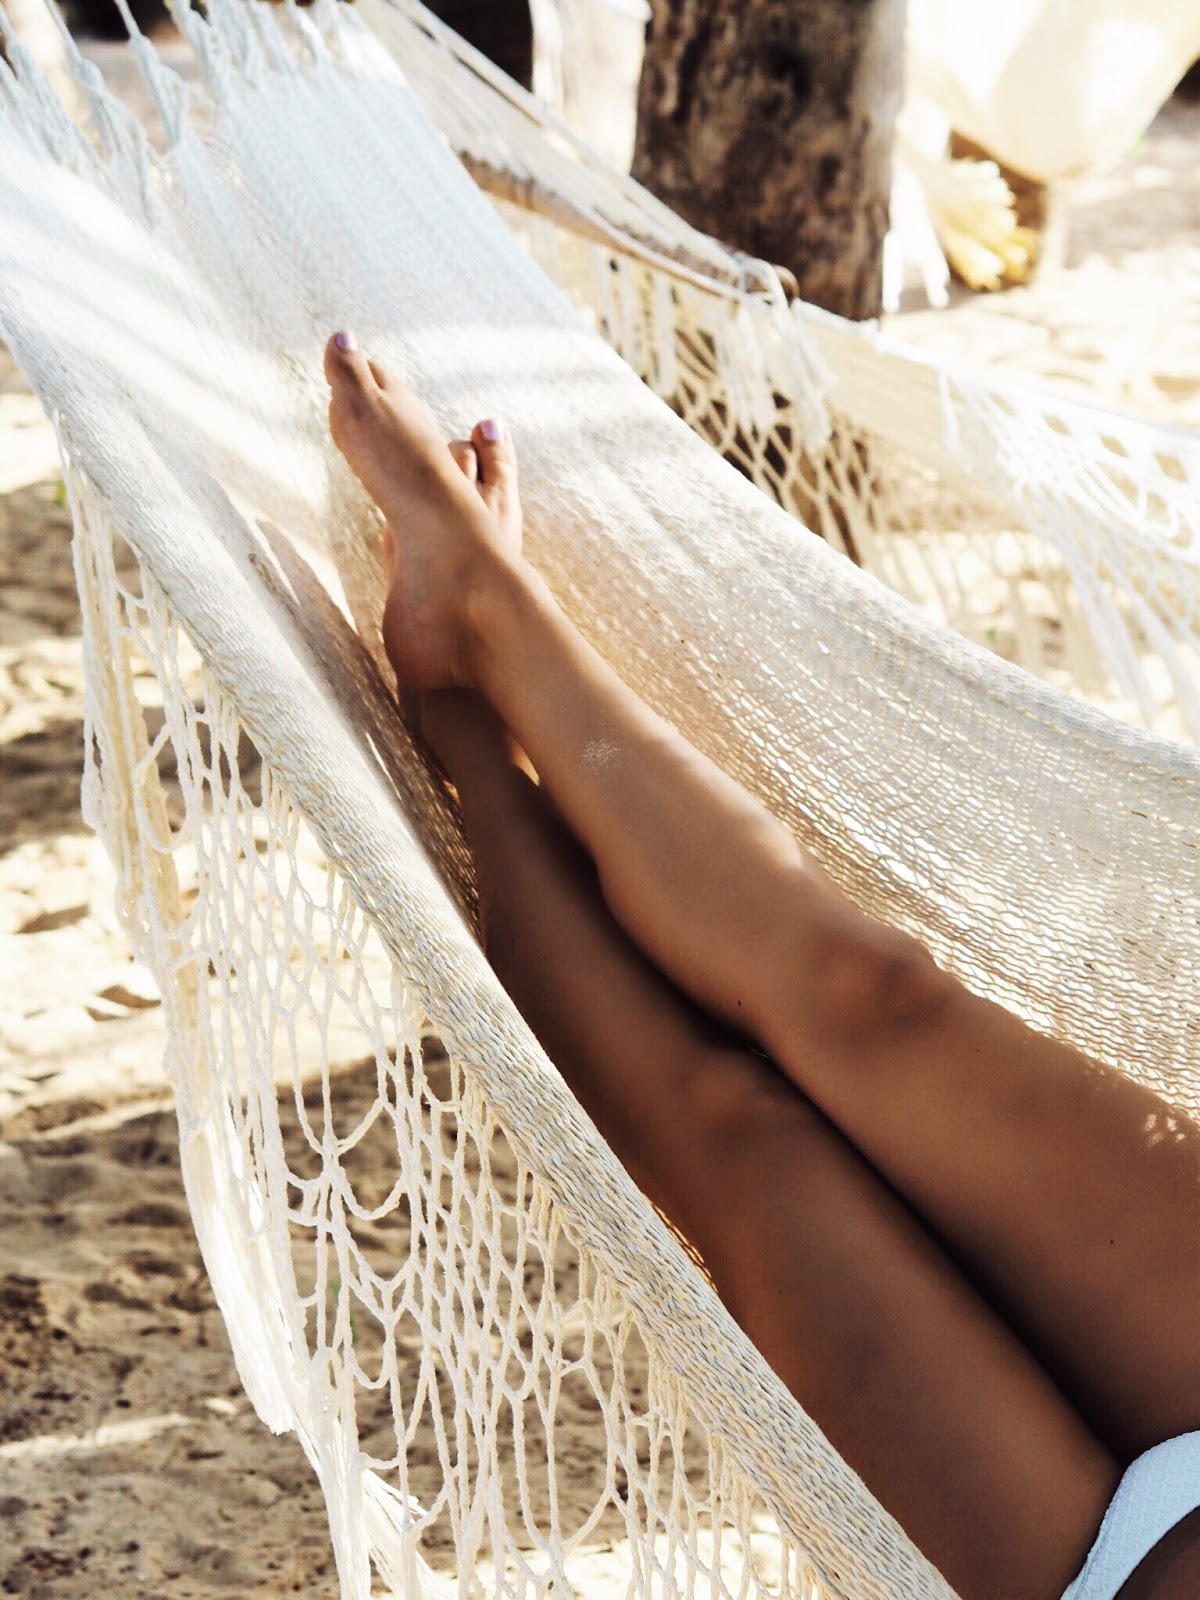 Tanned Legs in Woven Hammock with Sand underneath